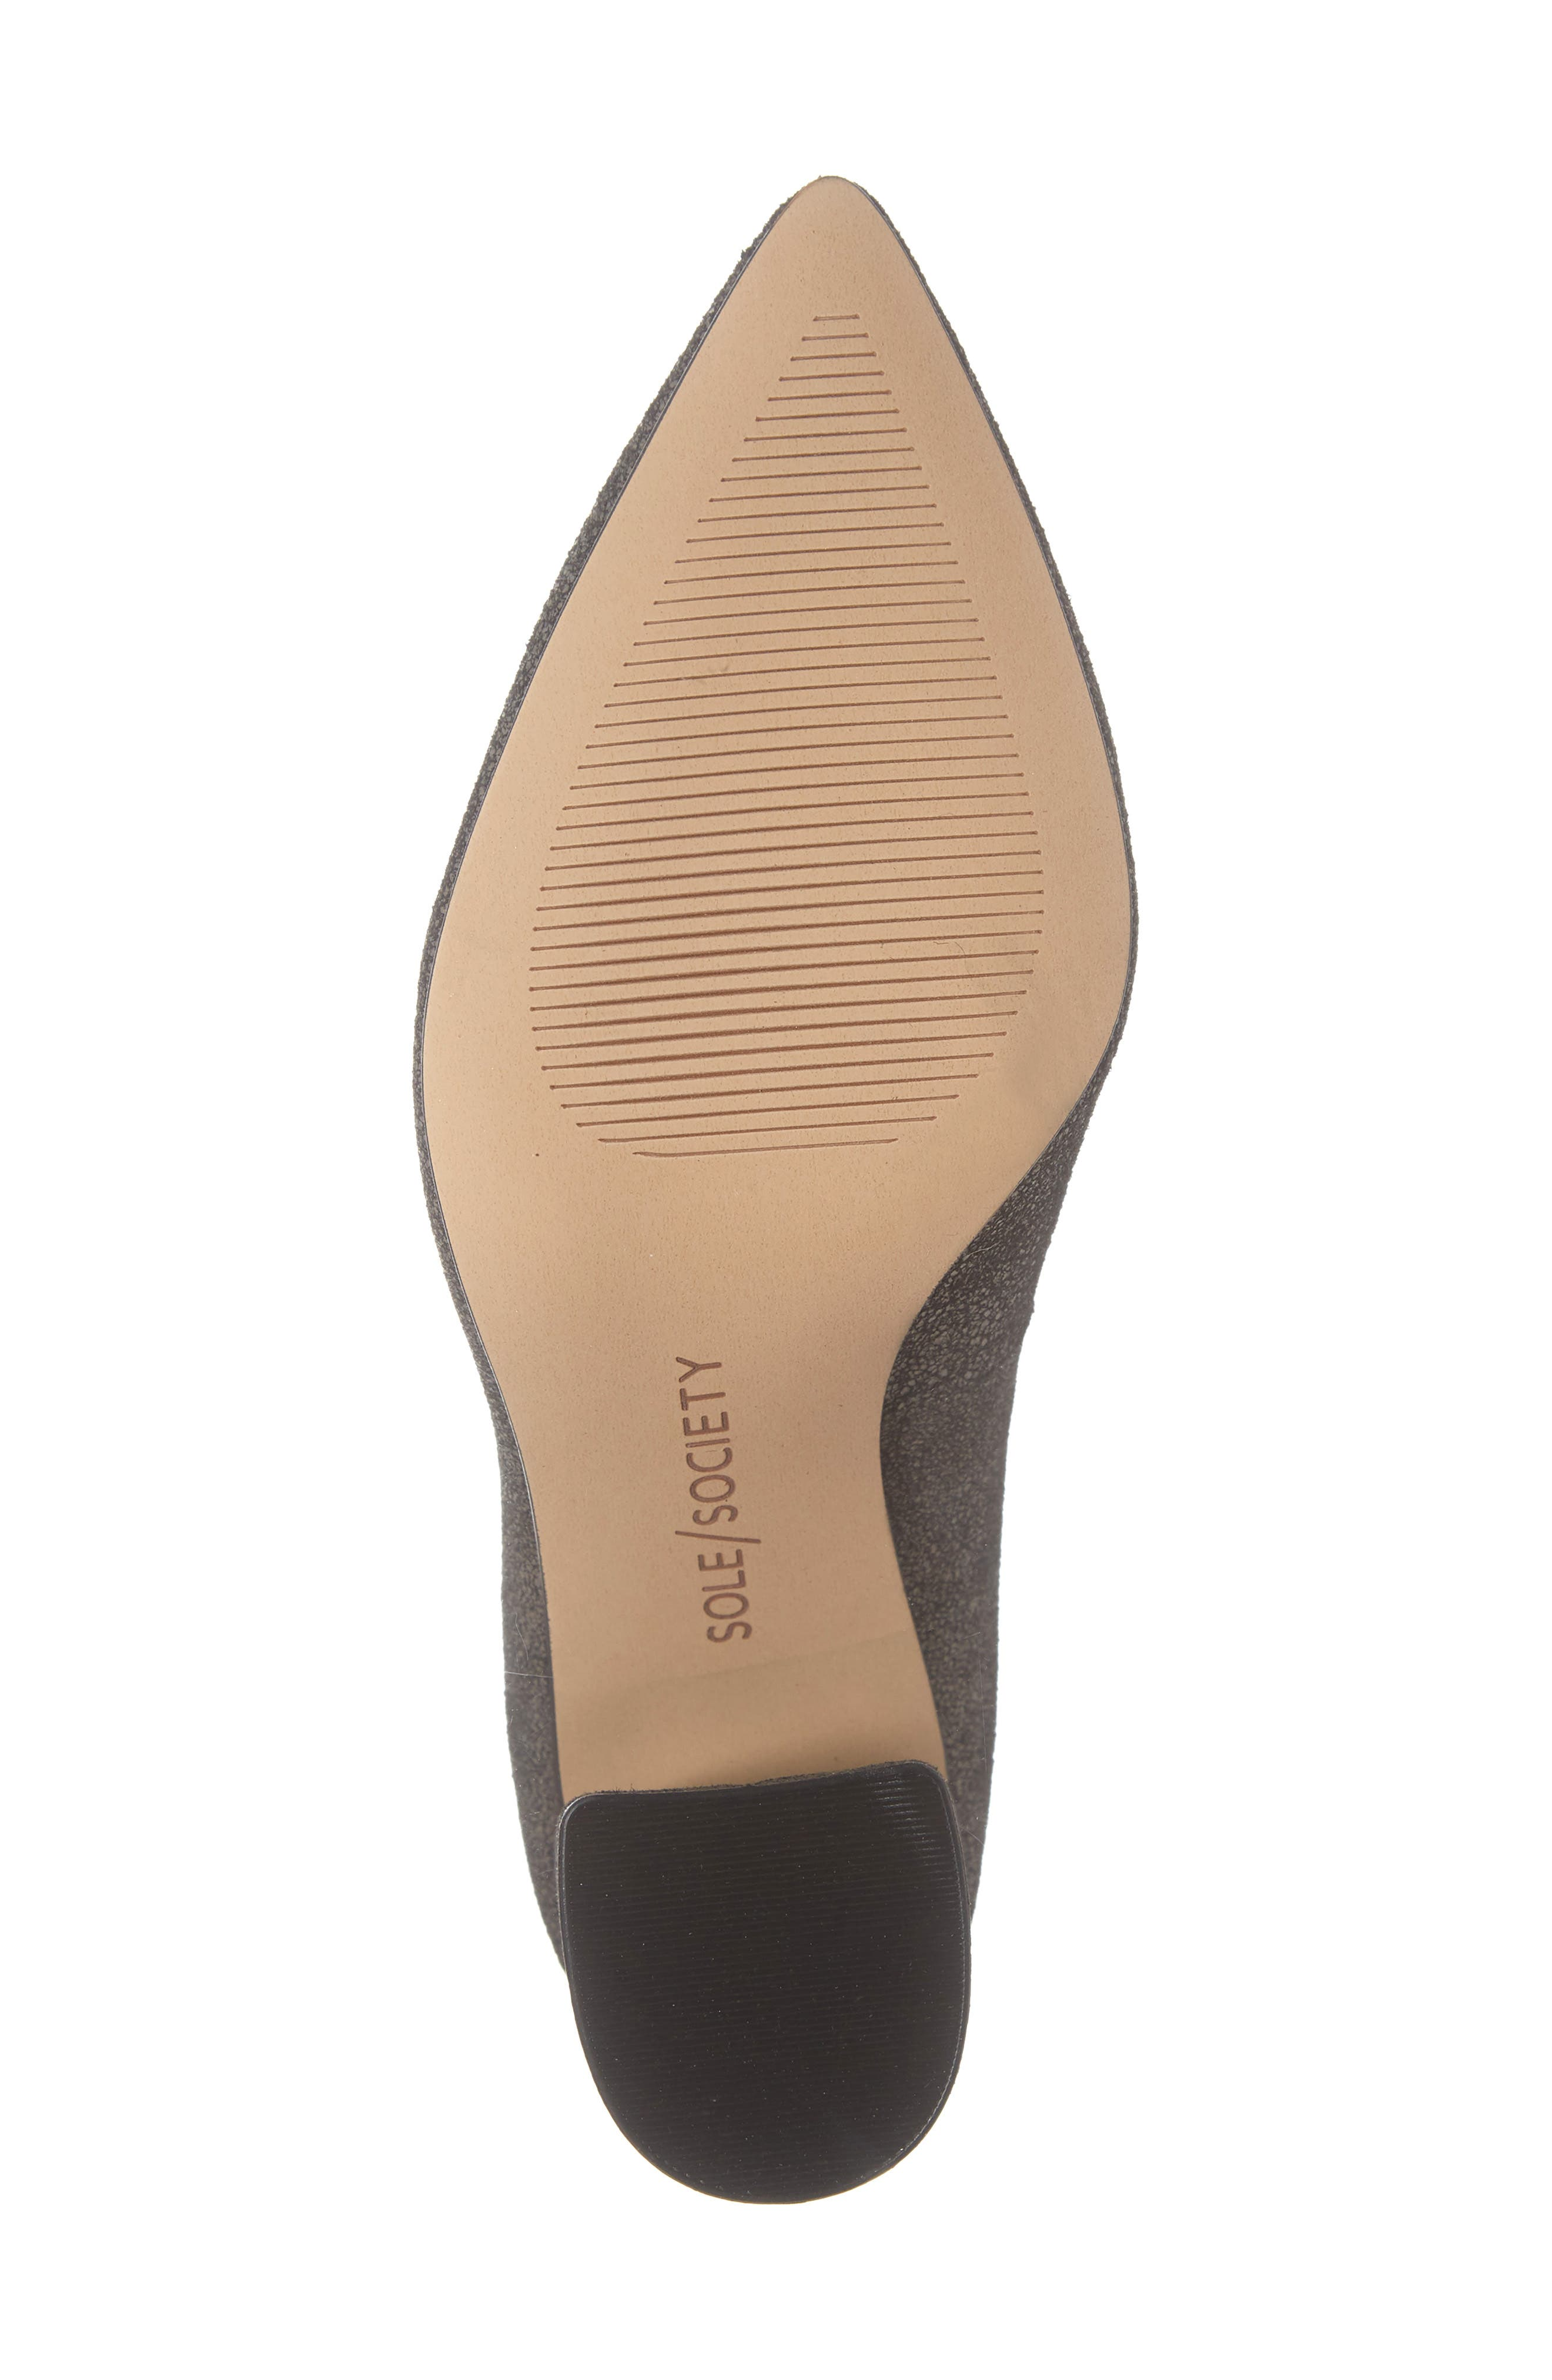 SOLE SOCIETY,                             Twila Pump,                             Alternate thumbnail 6, color,                             DARK CEMENT LEATHER